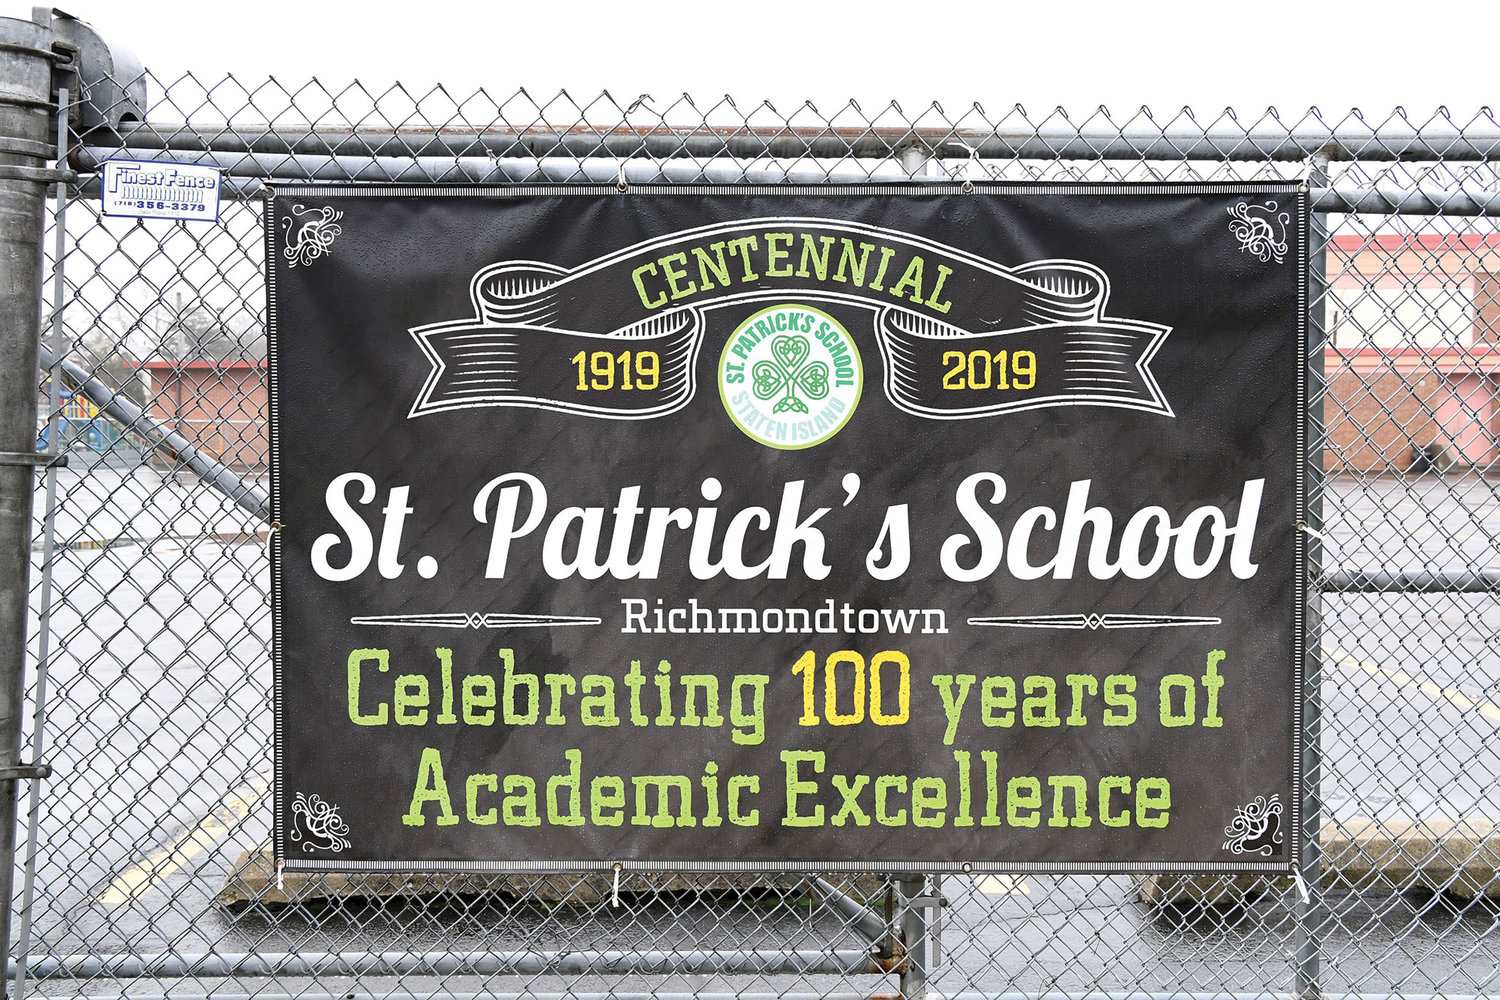 St. Patrick's School on Staten Island is celebrating its 100th anniversary this year.